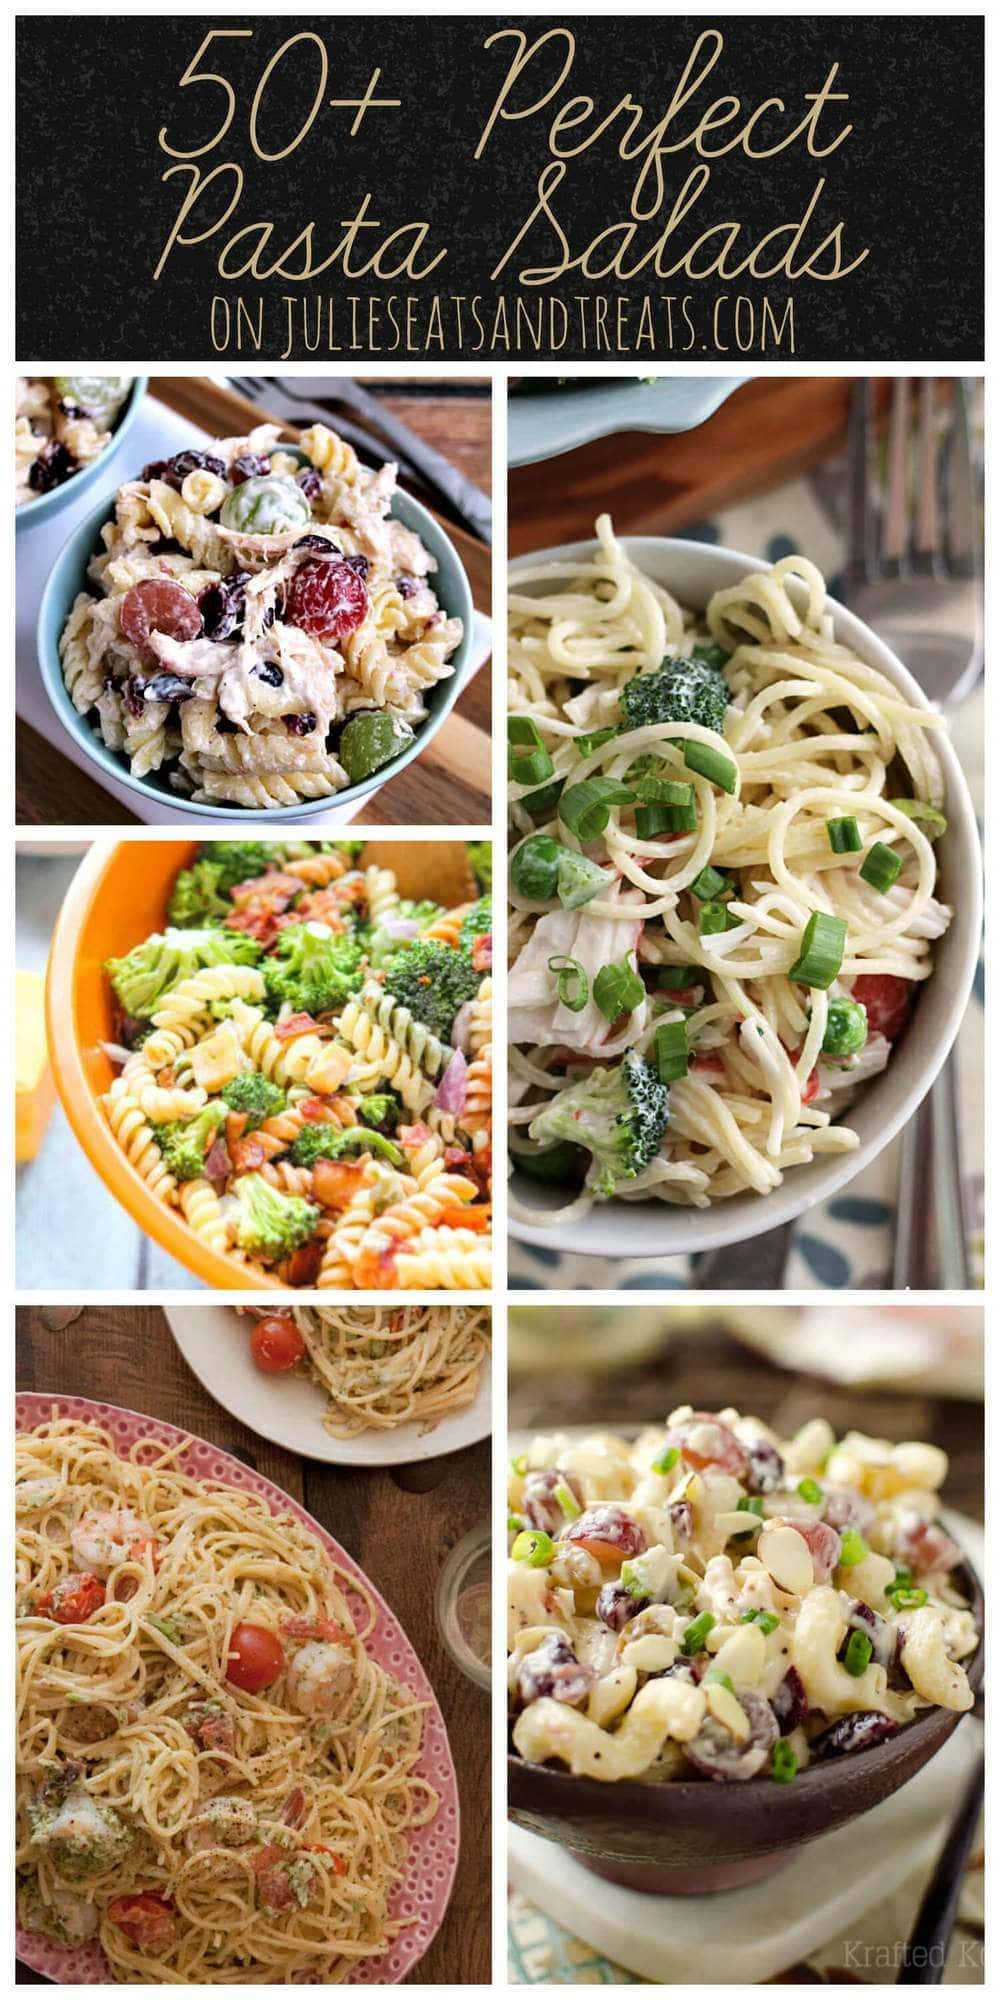 50+ Perfect Pasta Salads ~ You name it we have it! Everything from vegan to meat lovers, these pasta salads will spice up your summer.